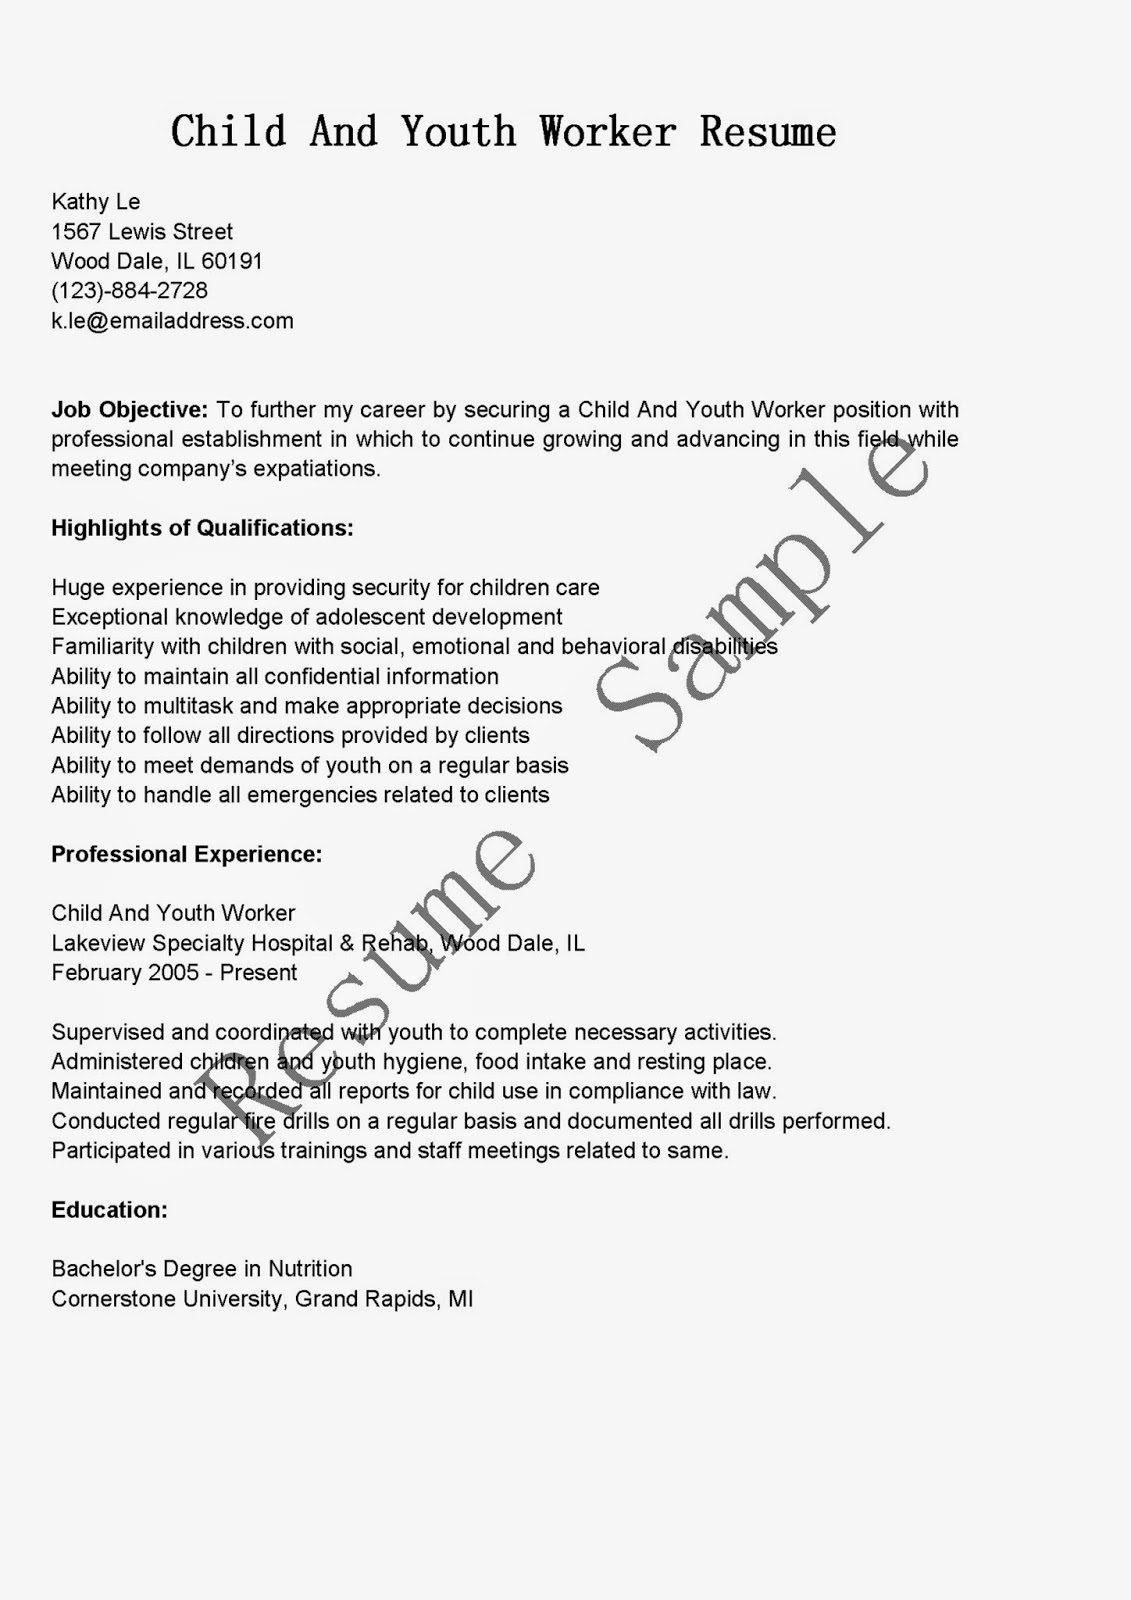 resume samples  child and youth worker resume sample